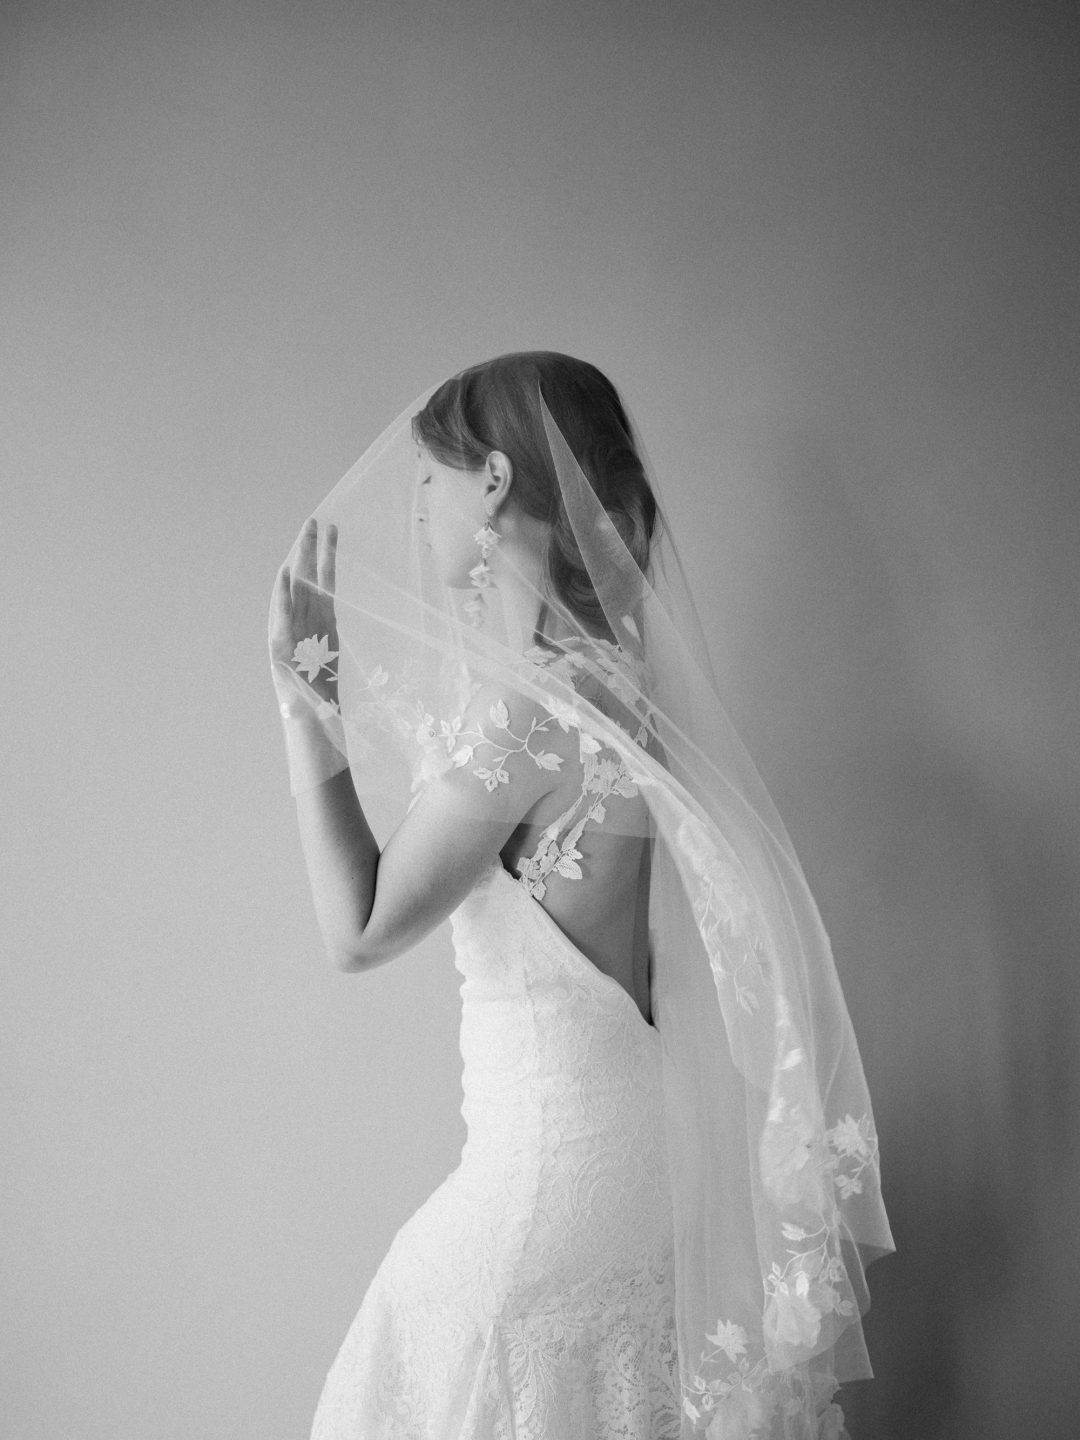 Style 912 - Embroidered Blusher Bridal Veil - by SIBO Designs Couture www.sibodesigns.com